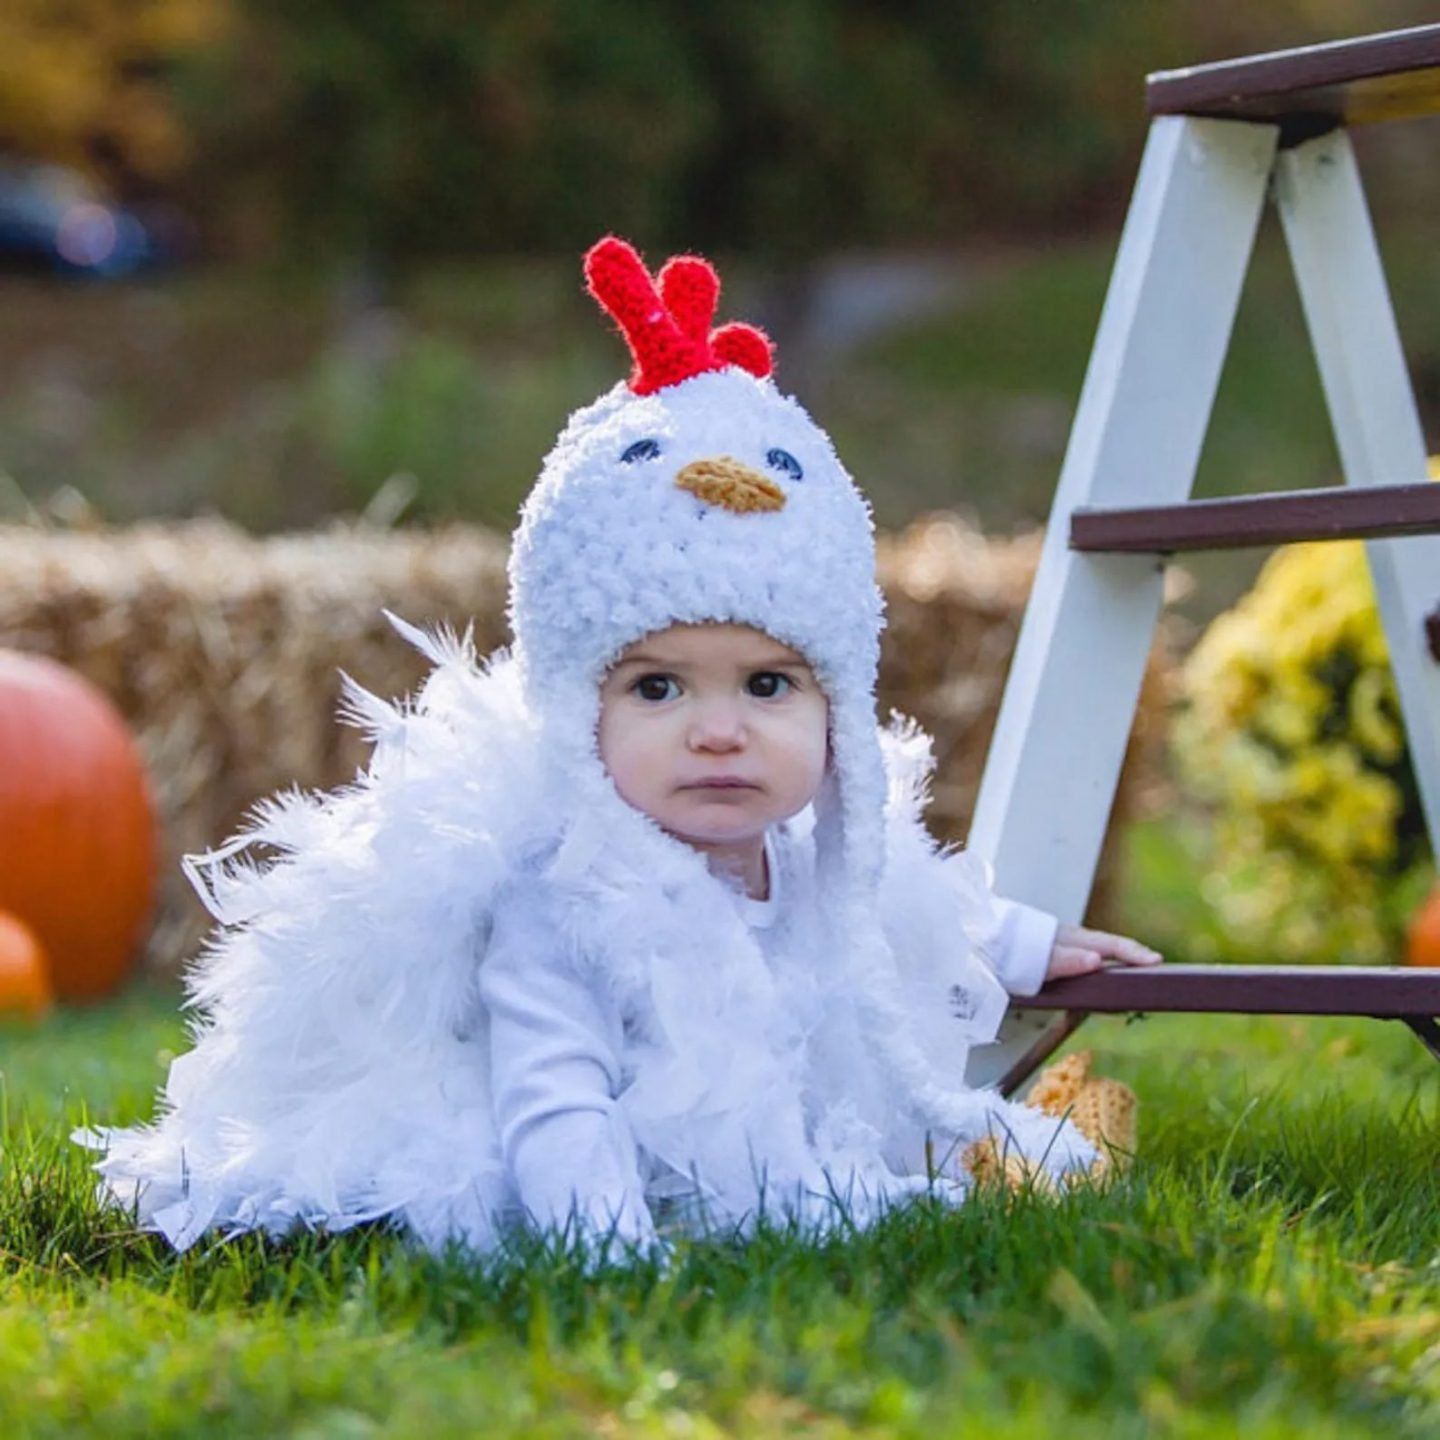 Cute feathered baby chicken Halloween costume